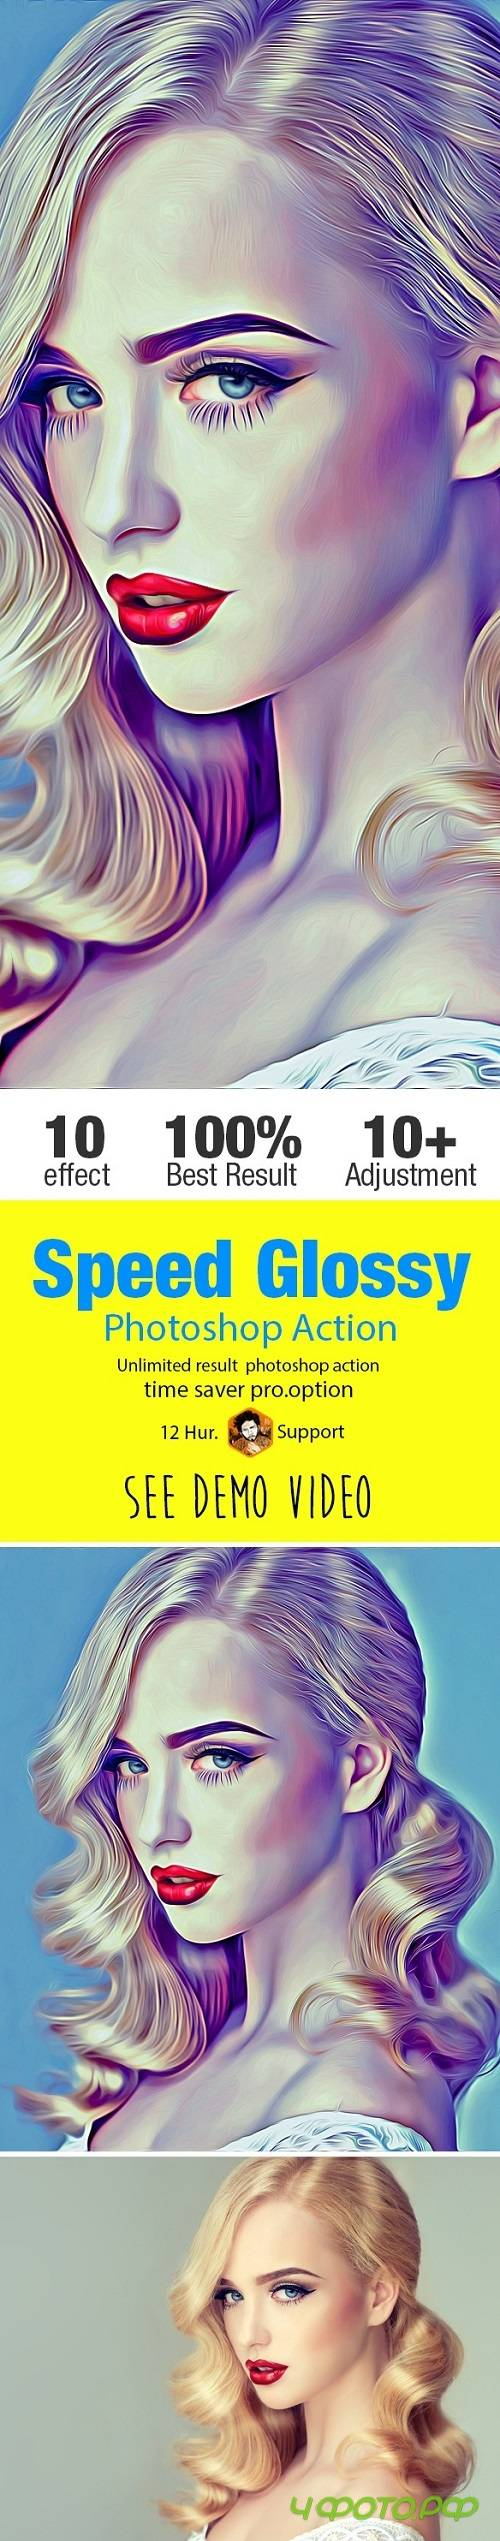 Speed Glossy Art Action 21140064